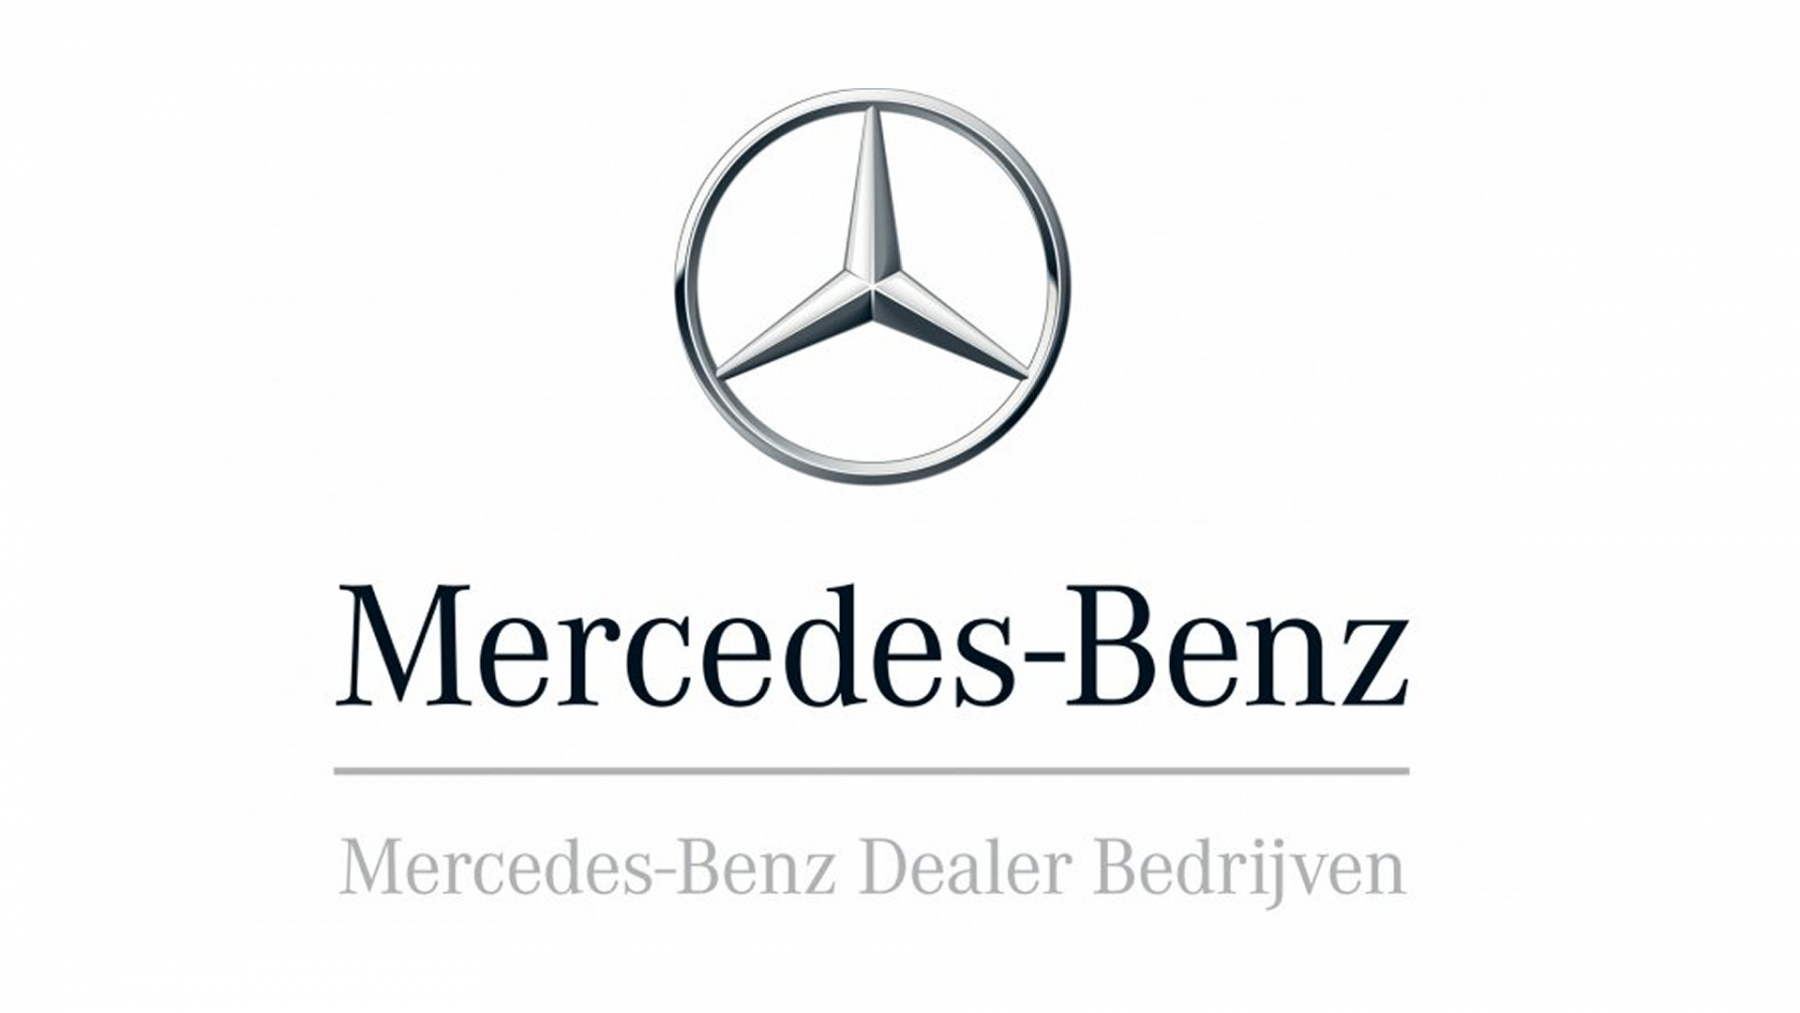 Mercedes-Benz-dealer.fw_